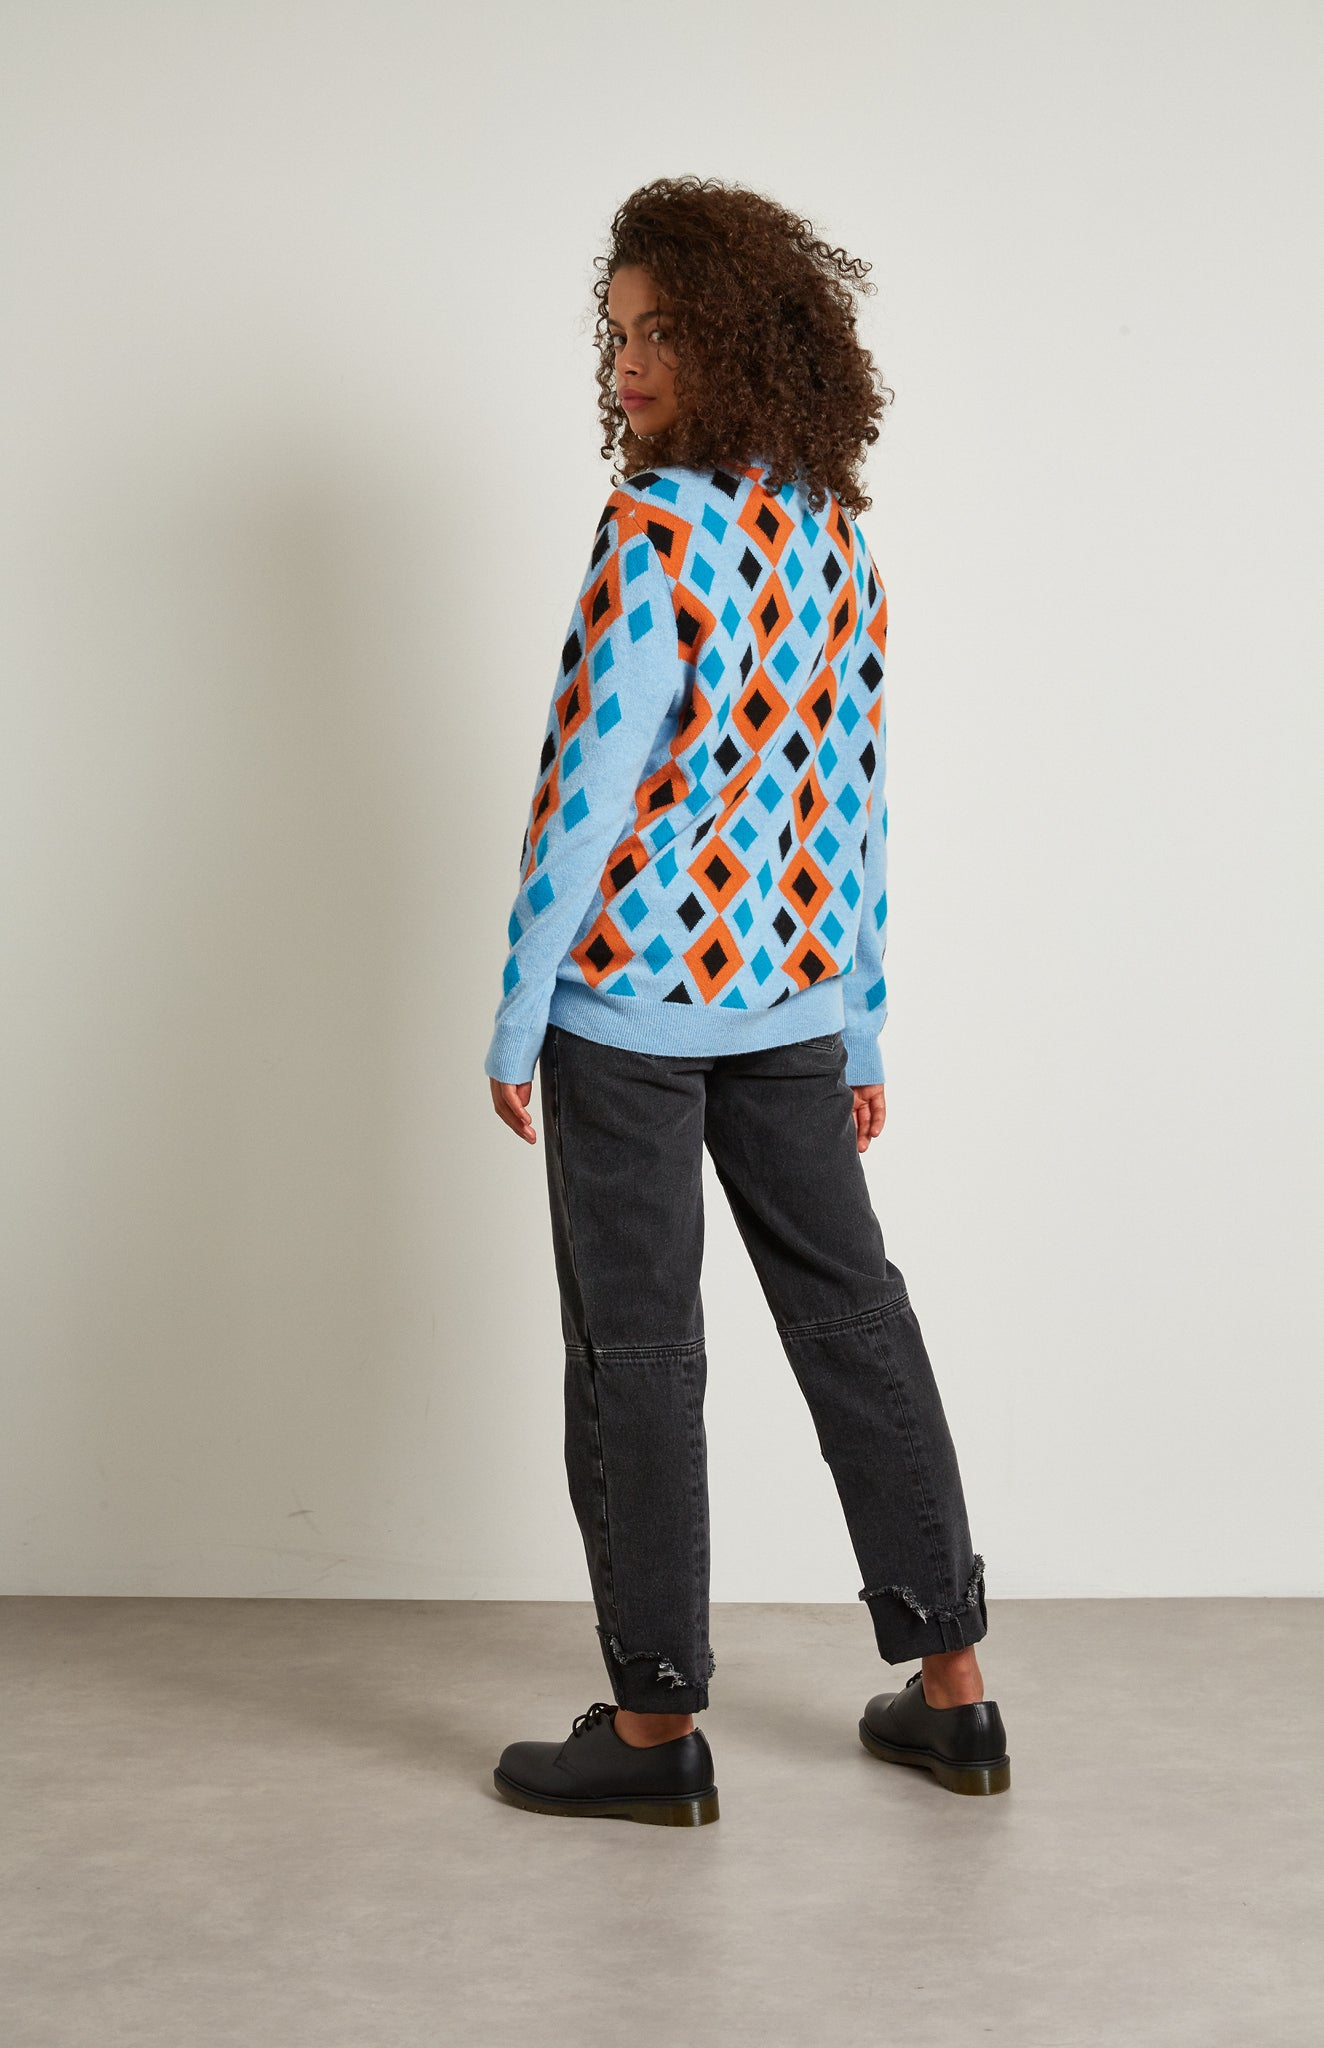 Pringle Reissued Unisex Multi Diamond Argyle Jumper In Light Blue on female model back shot